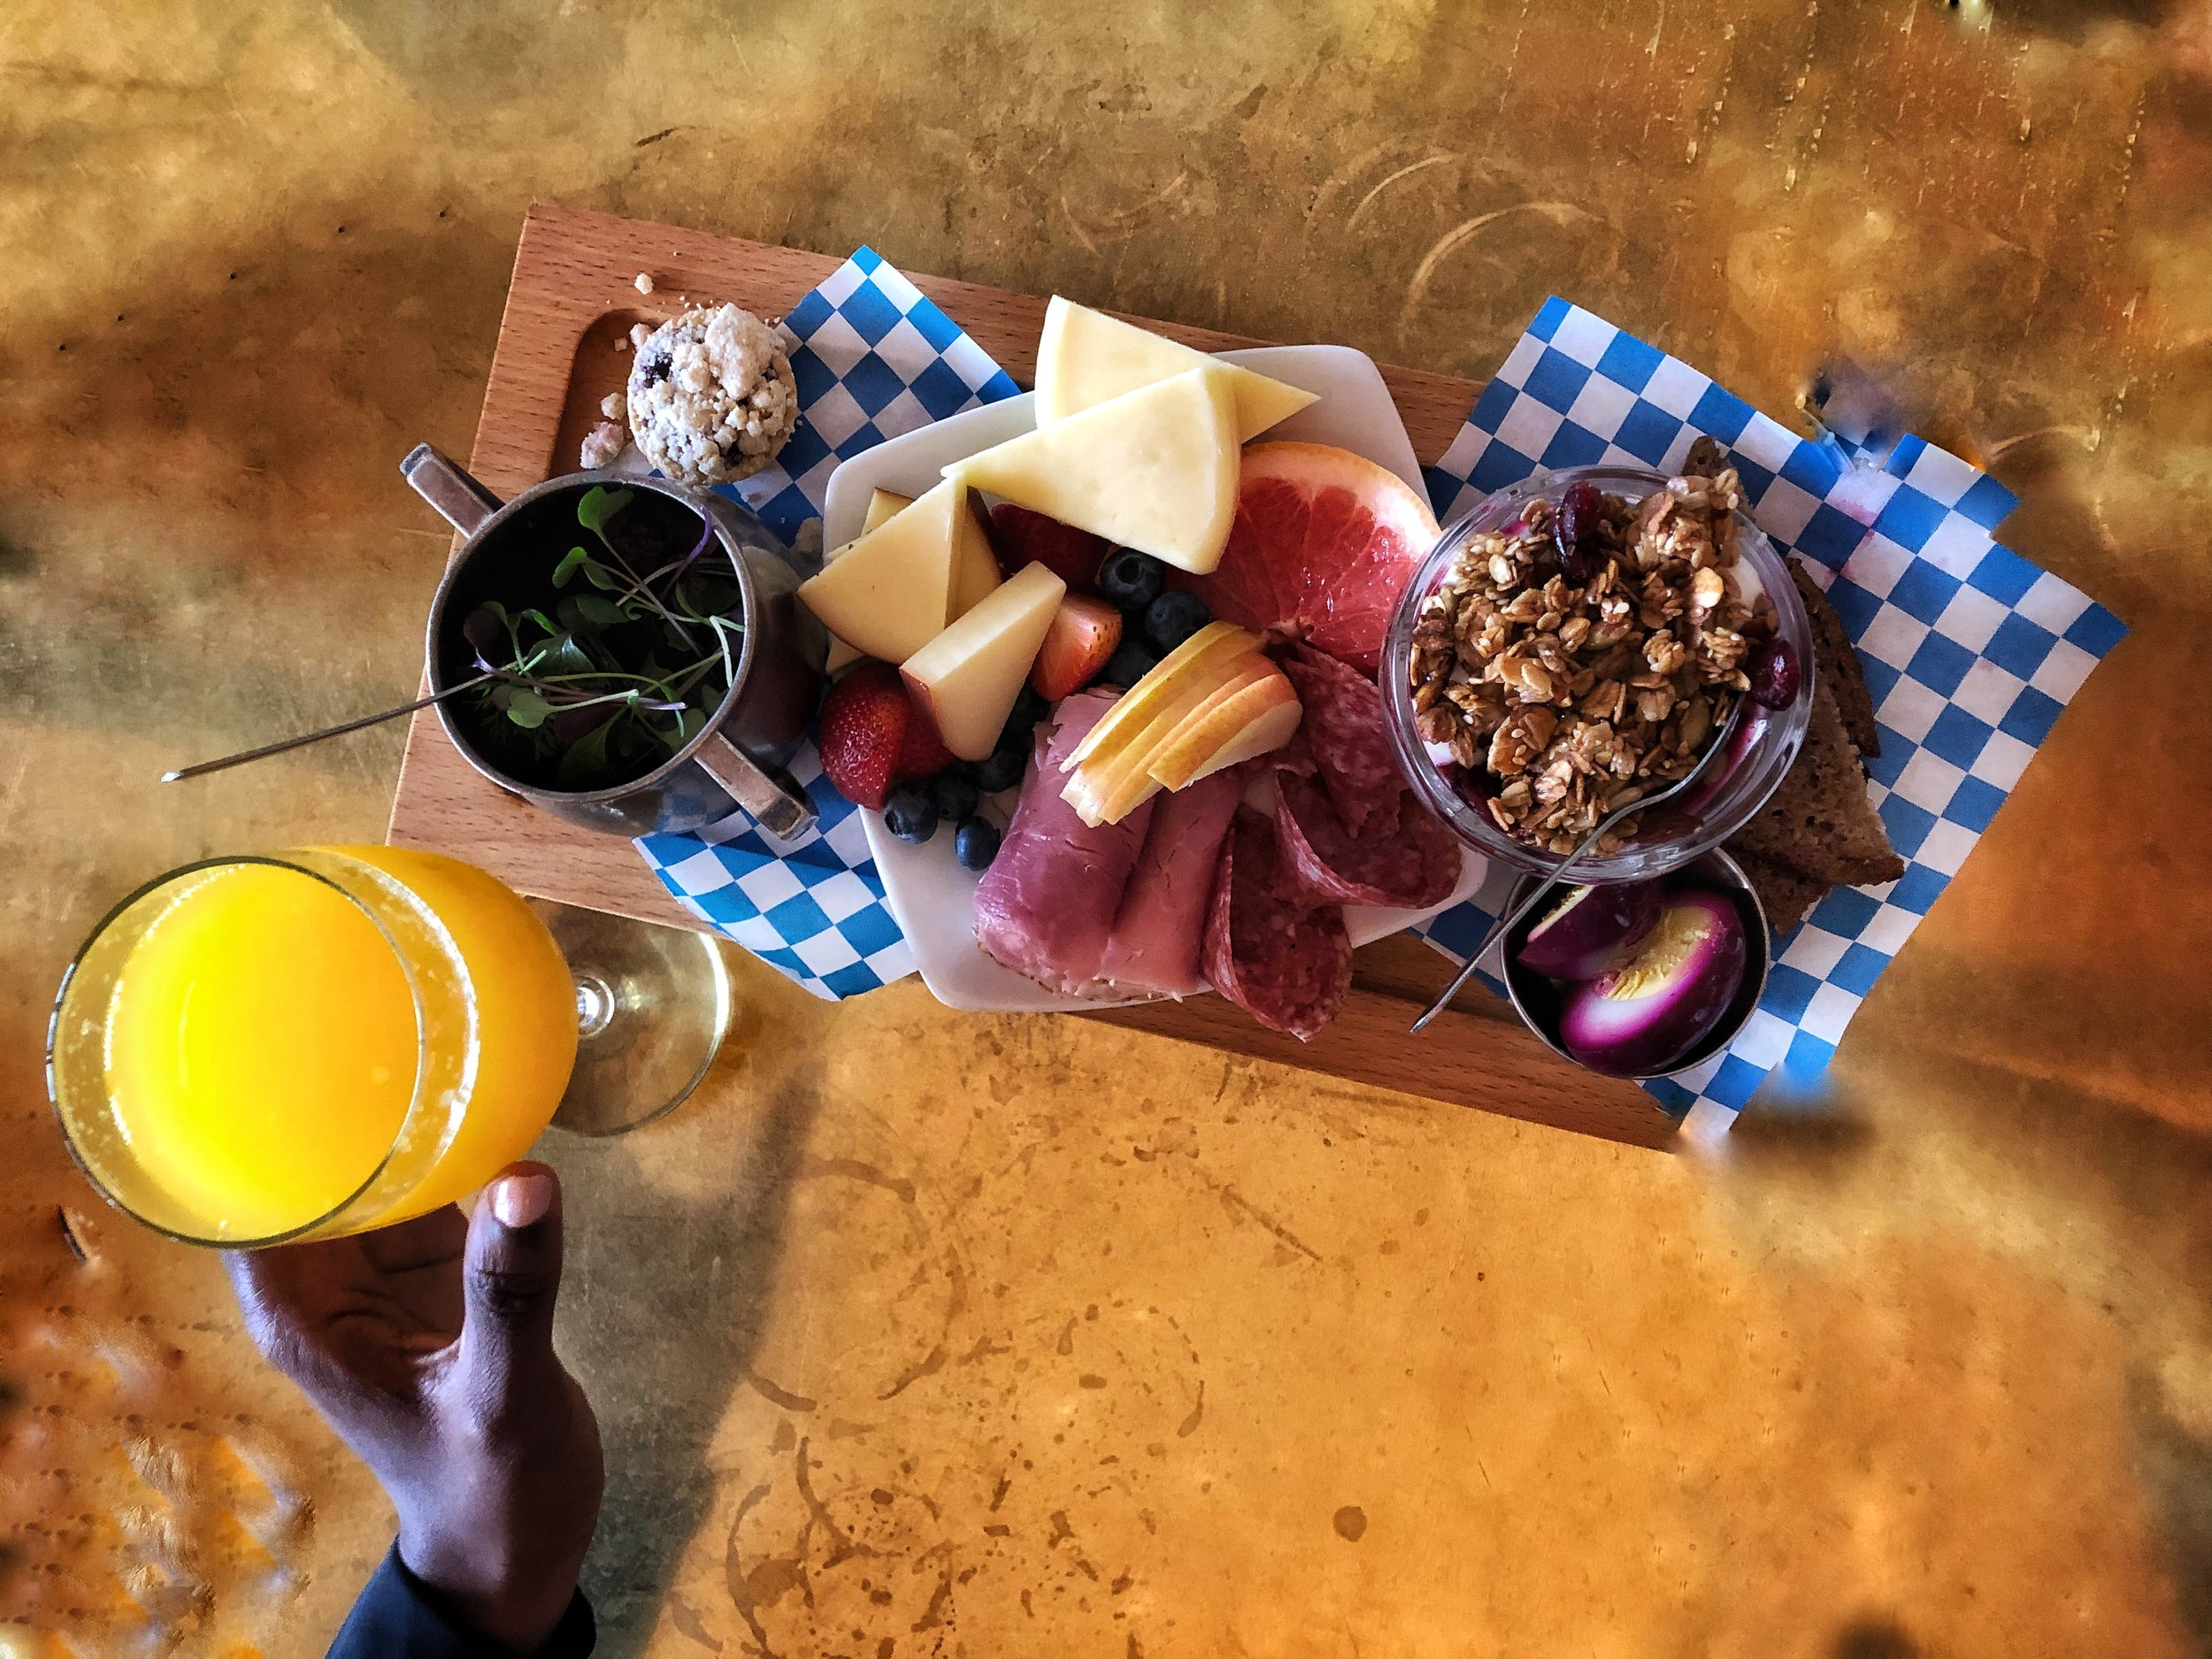 The cheese plate at Nord Broder is amazing. Shout-out to our friend for introducing us to this spot and hanging with us. They have three or four different locations across the city.